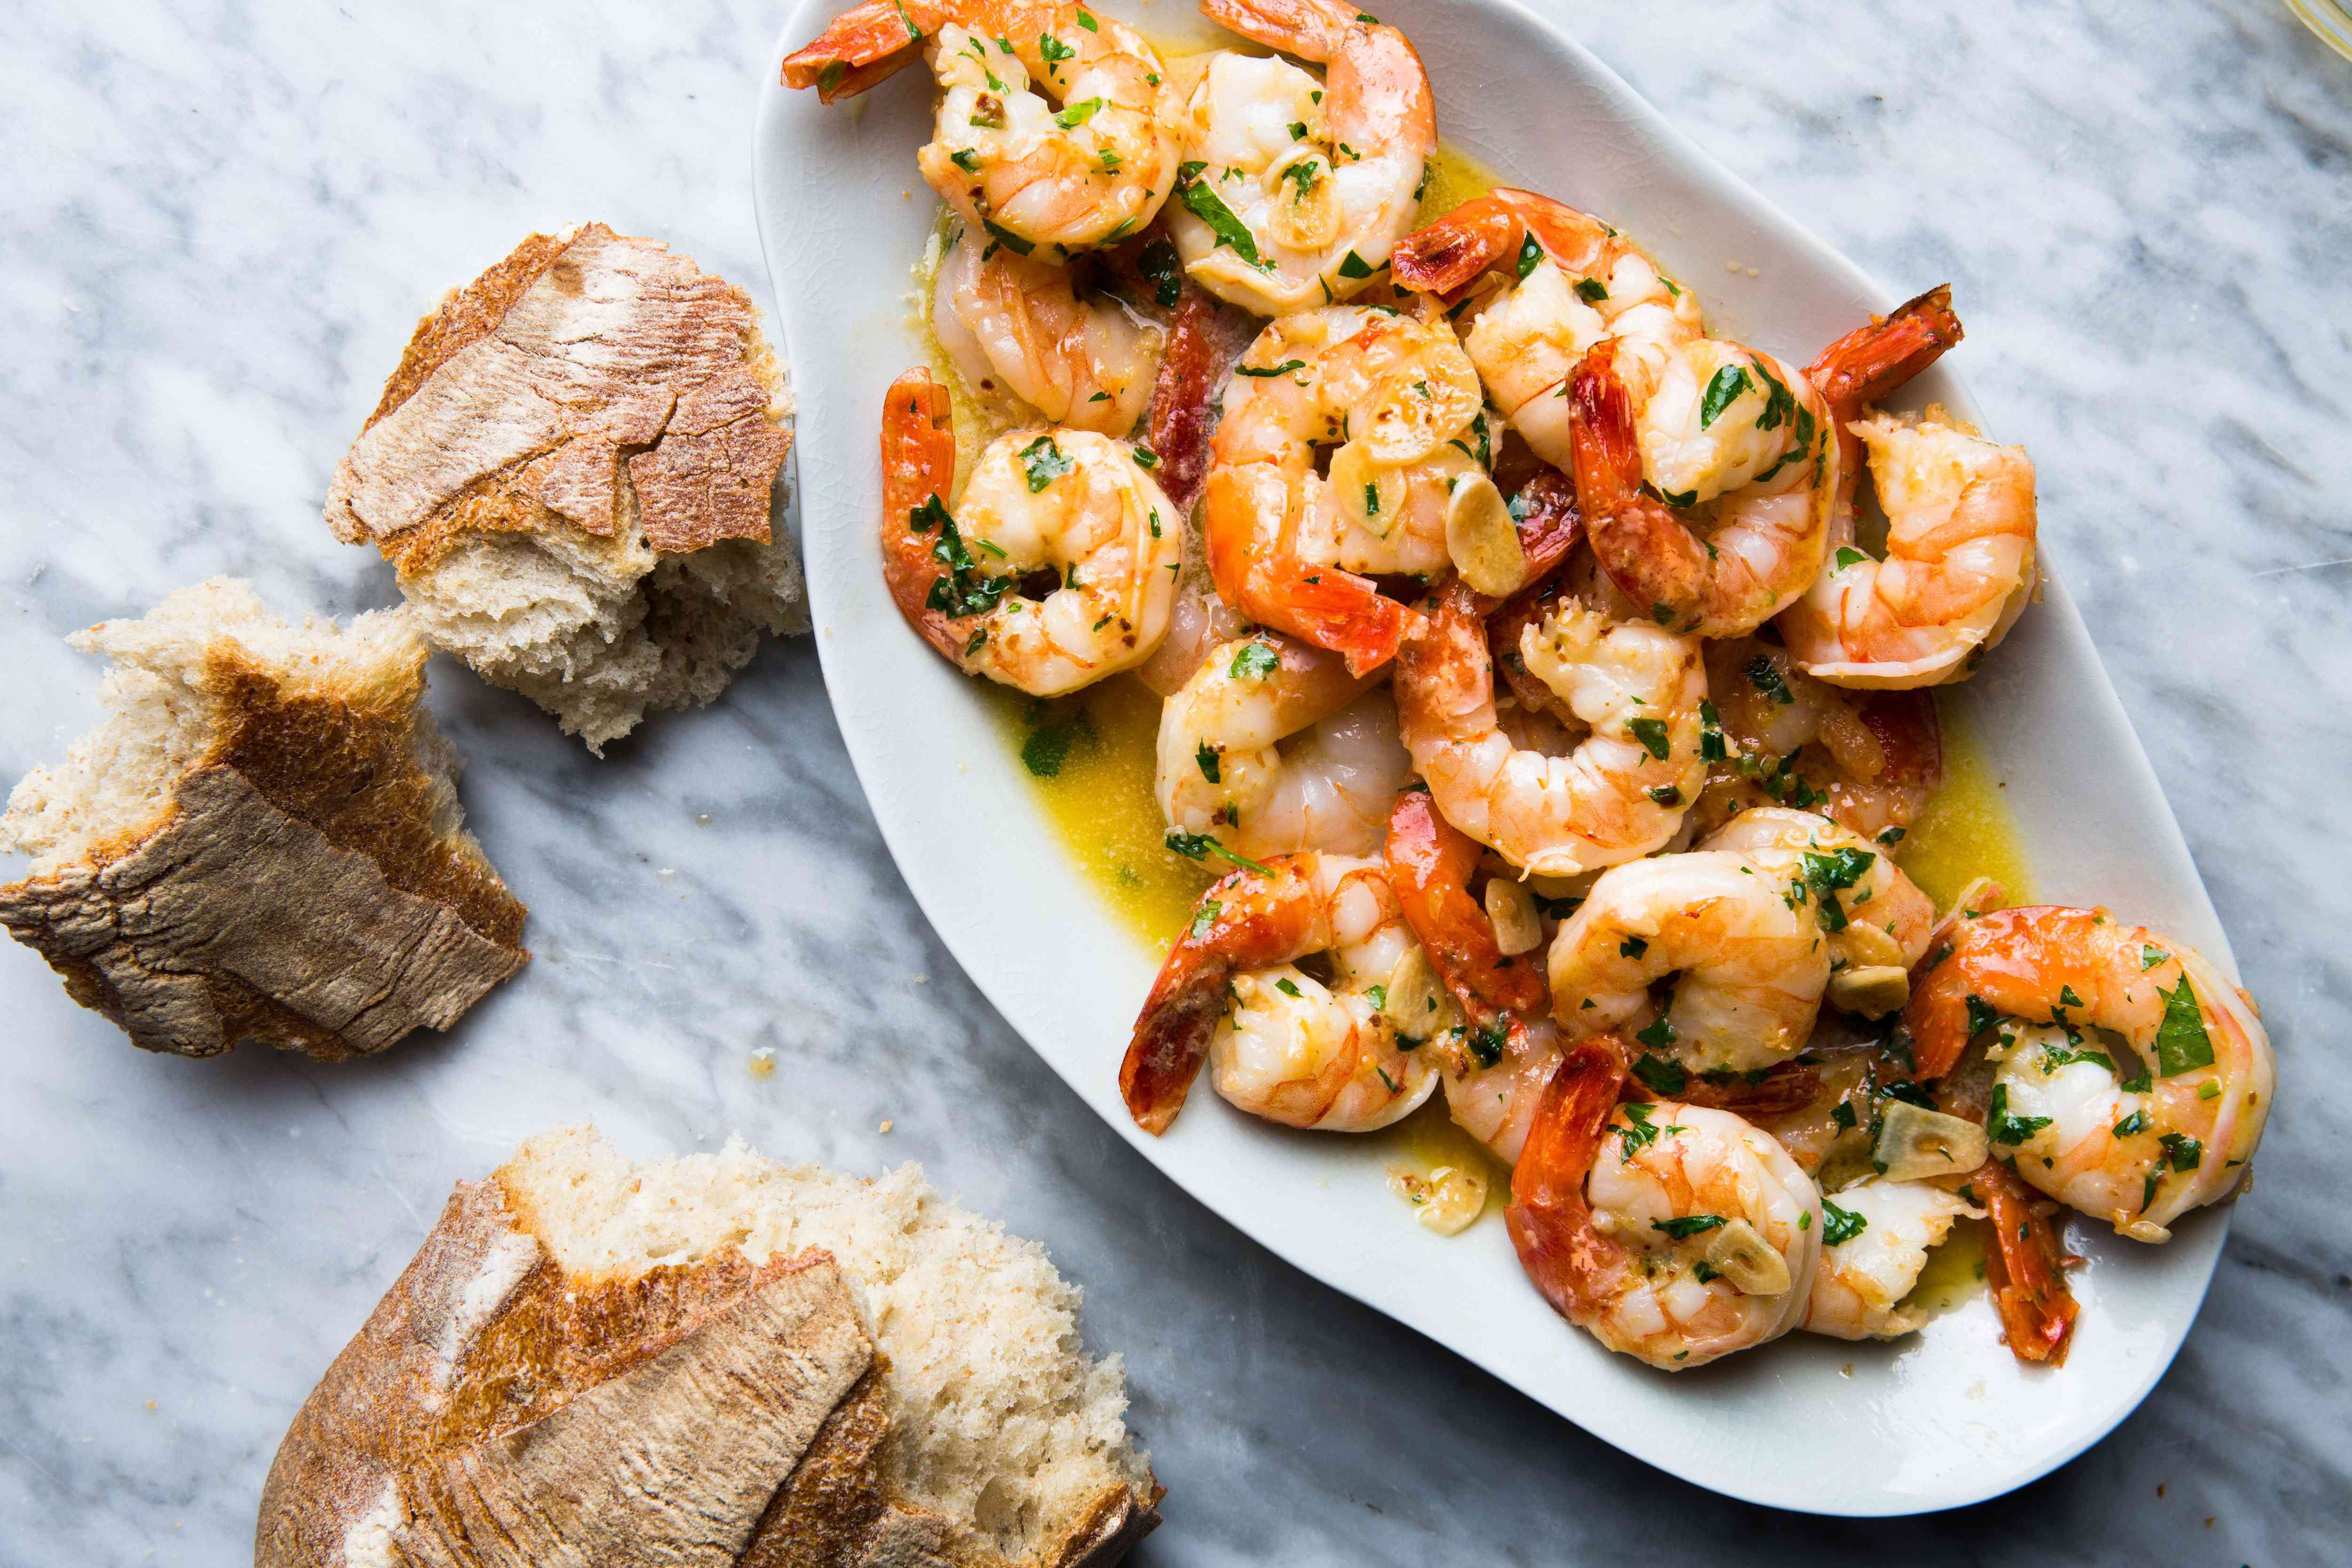 appetizers, hors d'oeuvres, food, reception, menu, seafood, bread, broth